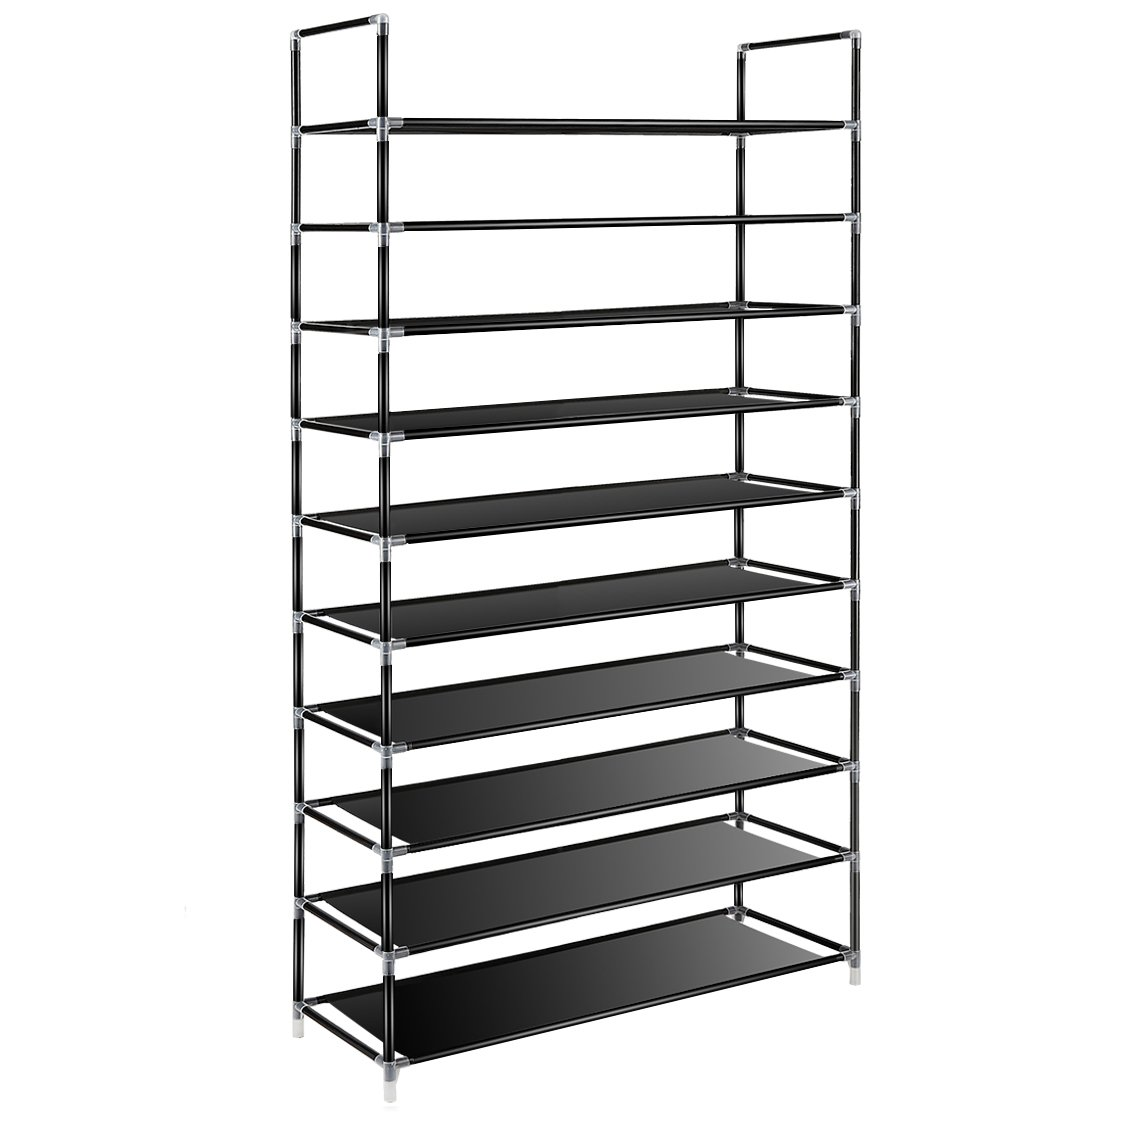 TomCare 10 Tier Shoe Rack 50 Pairs Shoe Organizer Shoes Storage Shoe Shelf Shoe Tower - No Tools Required Non-Woven Fabric for Home Bedroom, Black E-2003